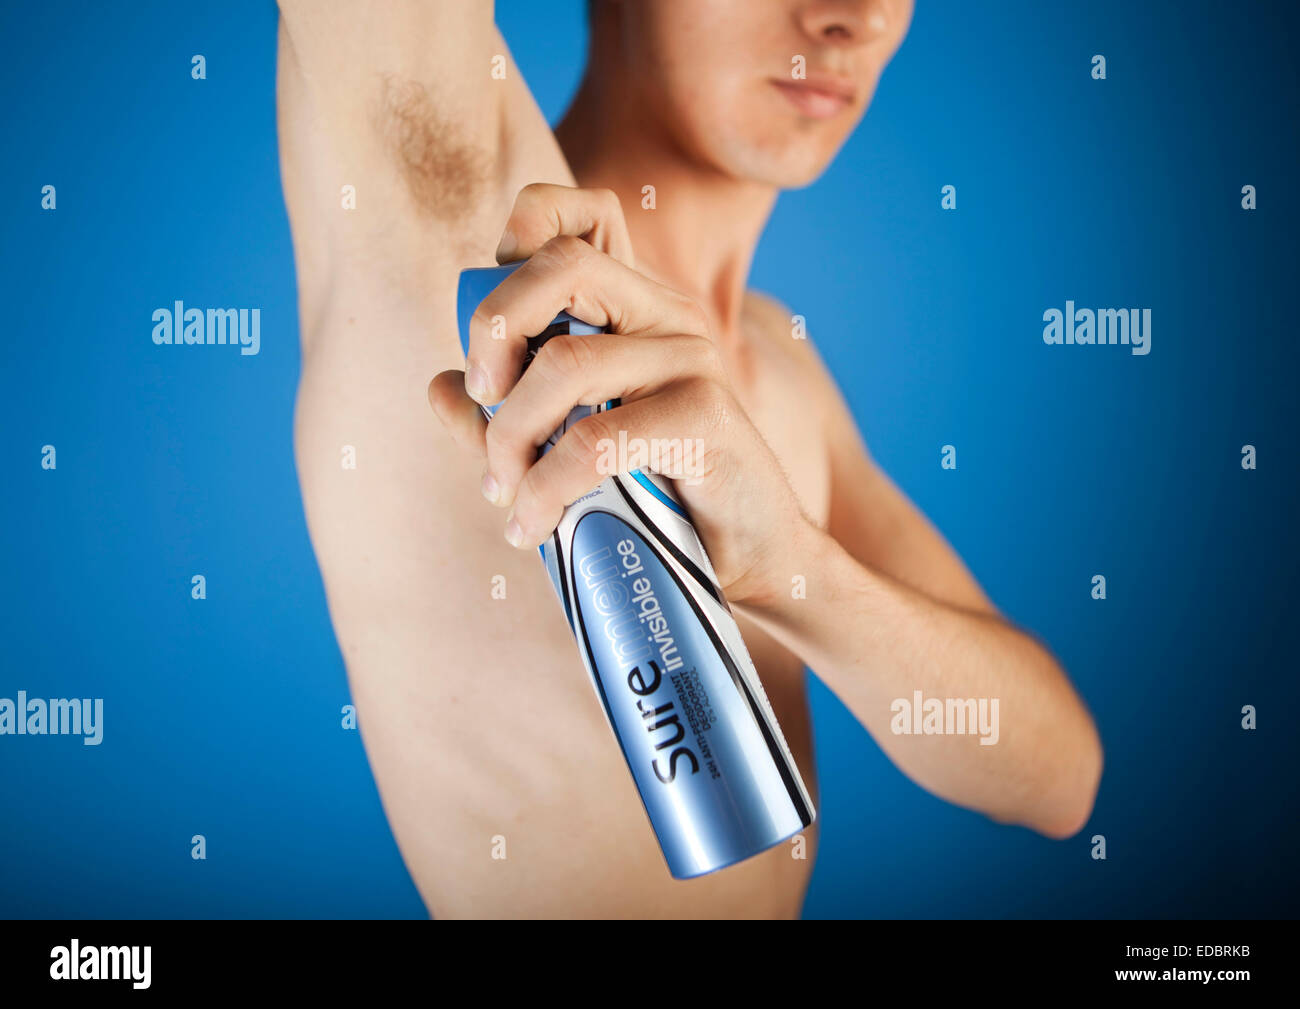 Illustrative image of a man using Sure for Men Invisible deodorant. A Unilever brand. - Stock Image